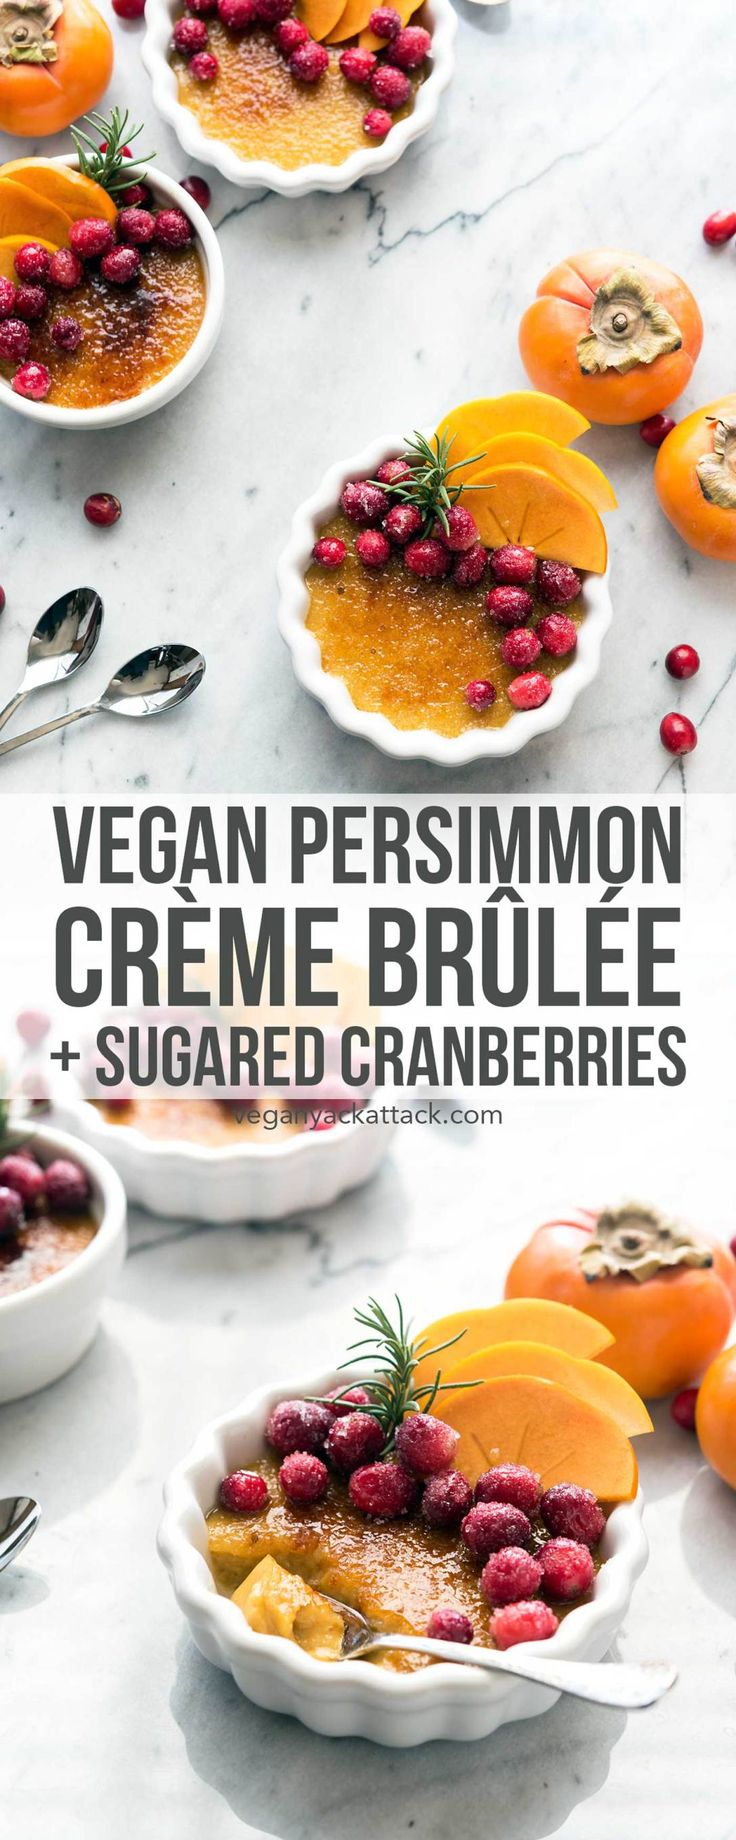 Looking for a stunning holiday dessert that is easy-to-make? Check out this impressive, vegan Persimmon Crème Brûlée with Sugared Cranberries! Made with Silk's Vanilla Almond Creamer. ♡